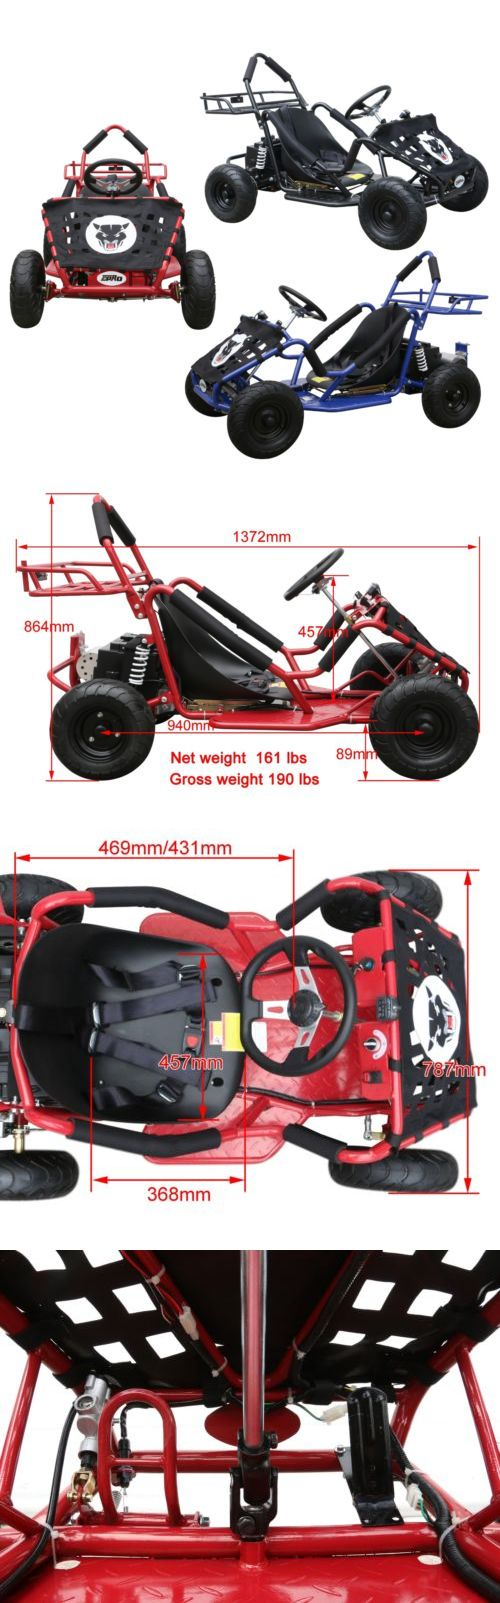 Complete Go-Karts and Frames 64656: 48V 1000W 4 Wheeler New Adult Or Kids Outdoor Sports Electric Go-Kart Racing -> BUY IT NOW ONLY: $858.99 on eBay!